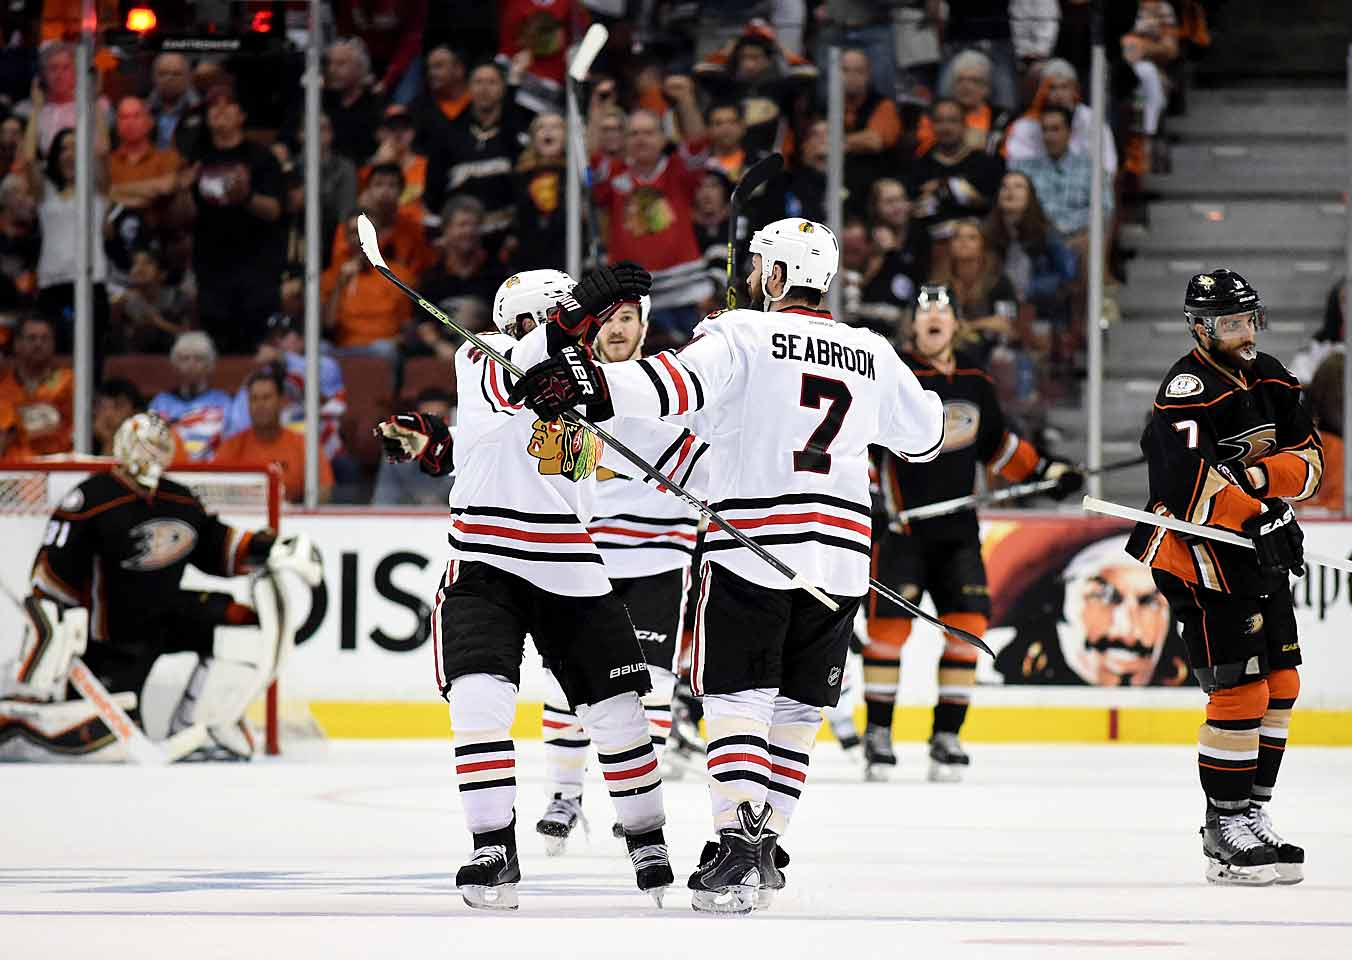 Extended to seven games by the Ducks, the Blackhawks jump out to a 2-0 lead in Anaheim thanks to a pair of goals by Jon Toews and hold on for a 5-3 win that sends them the Stanley Cup Final where they take on the Tampa Bay Lightning.